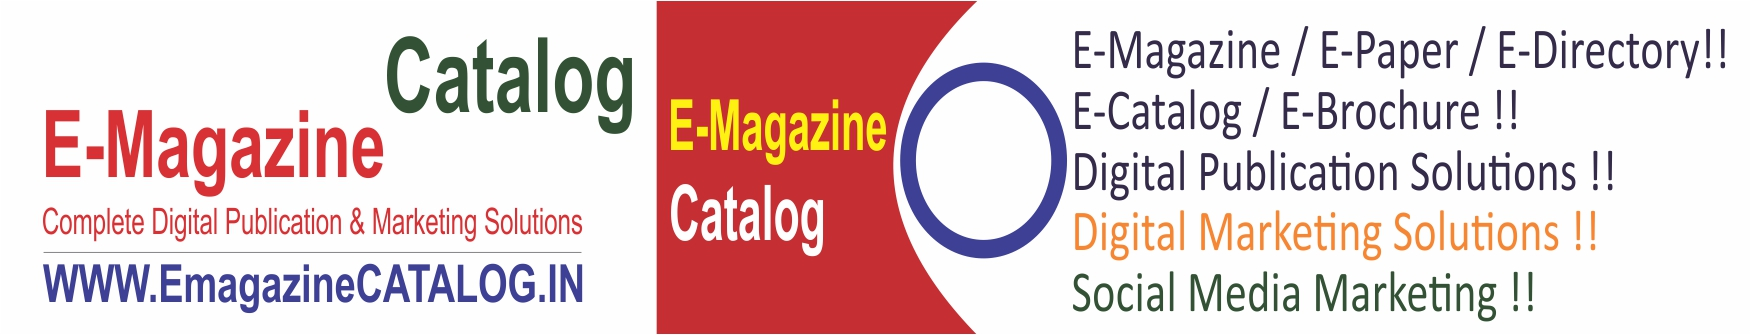 Emagazine CATALOG.IN – Convert Your News Paper, Magazine, Brochure, Catalog into ePAPER, eMAGAZINE, eBrochure, eCatalog, eBOOKS.